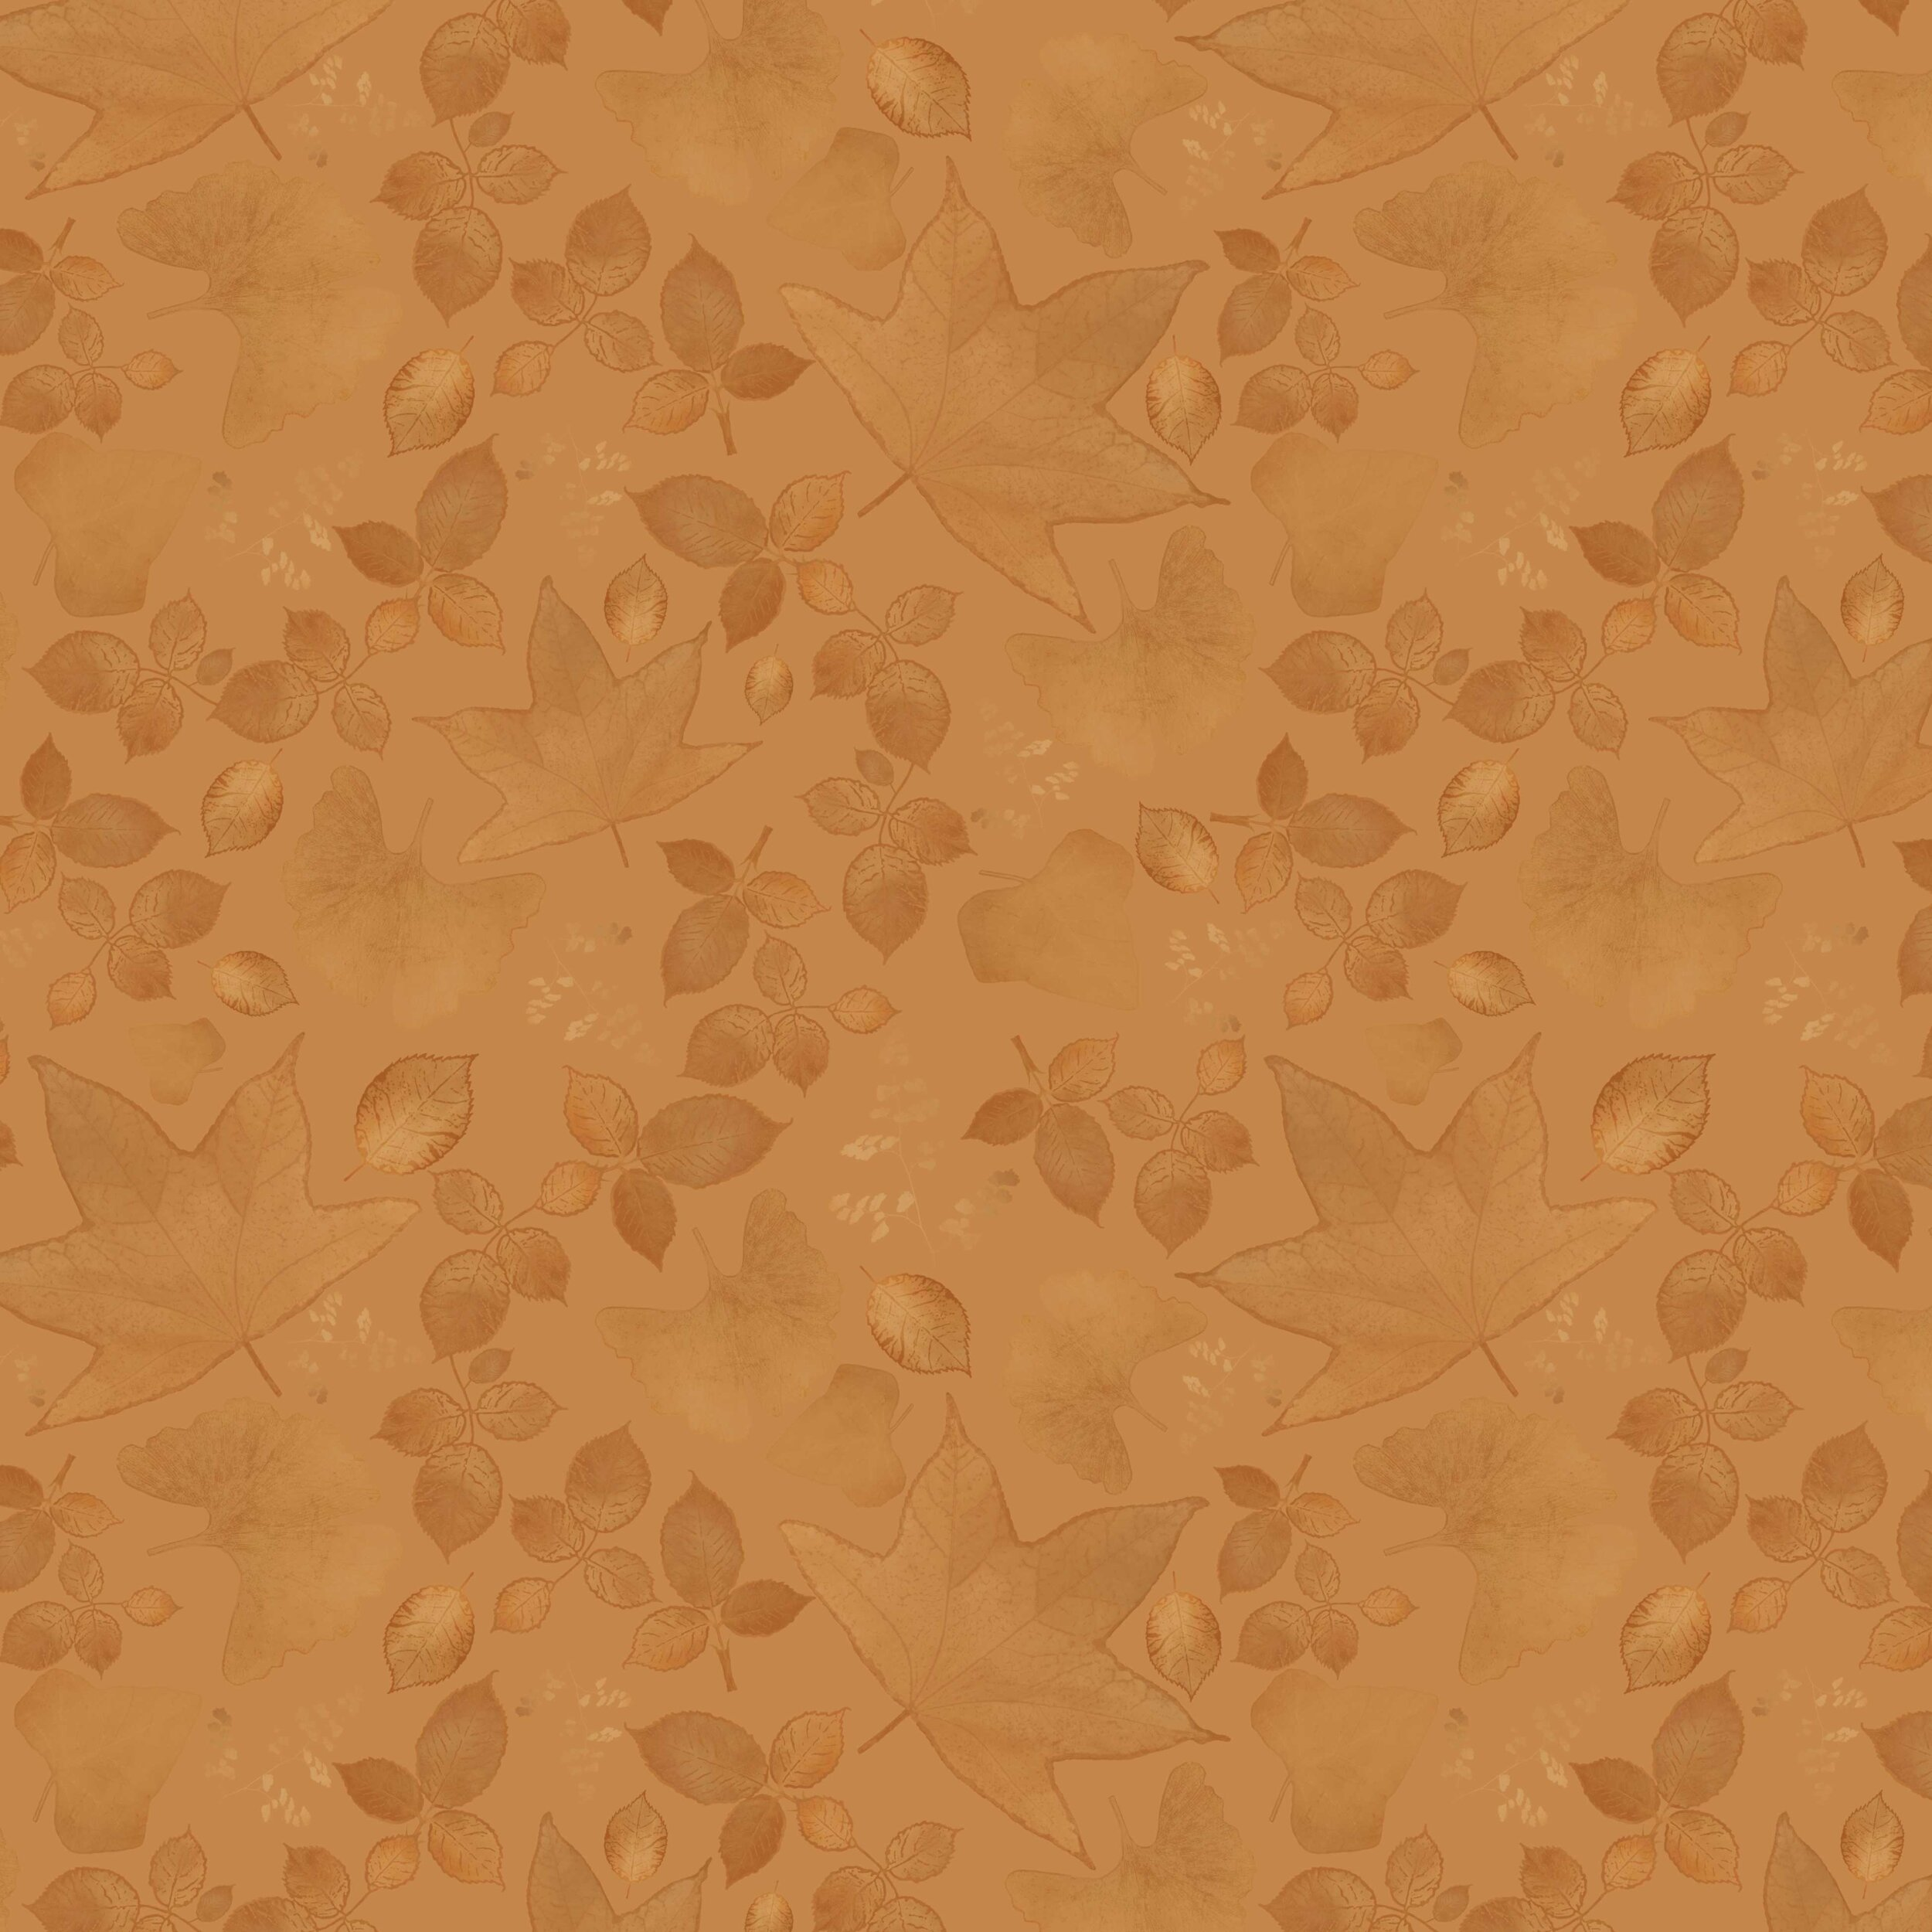 eco repeat fabric autumn gold background.jpg